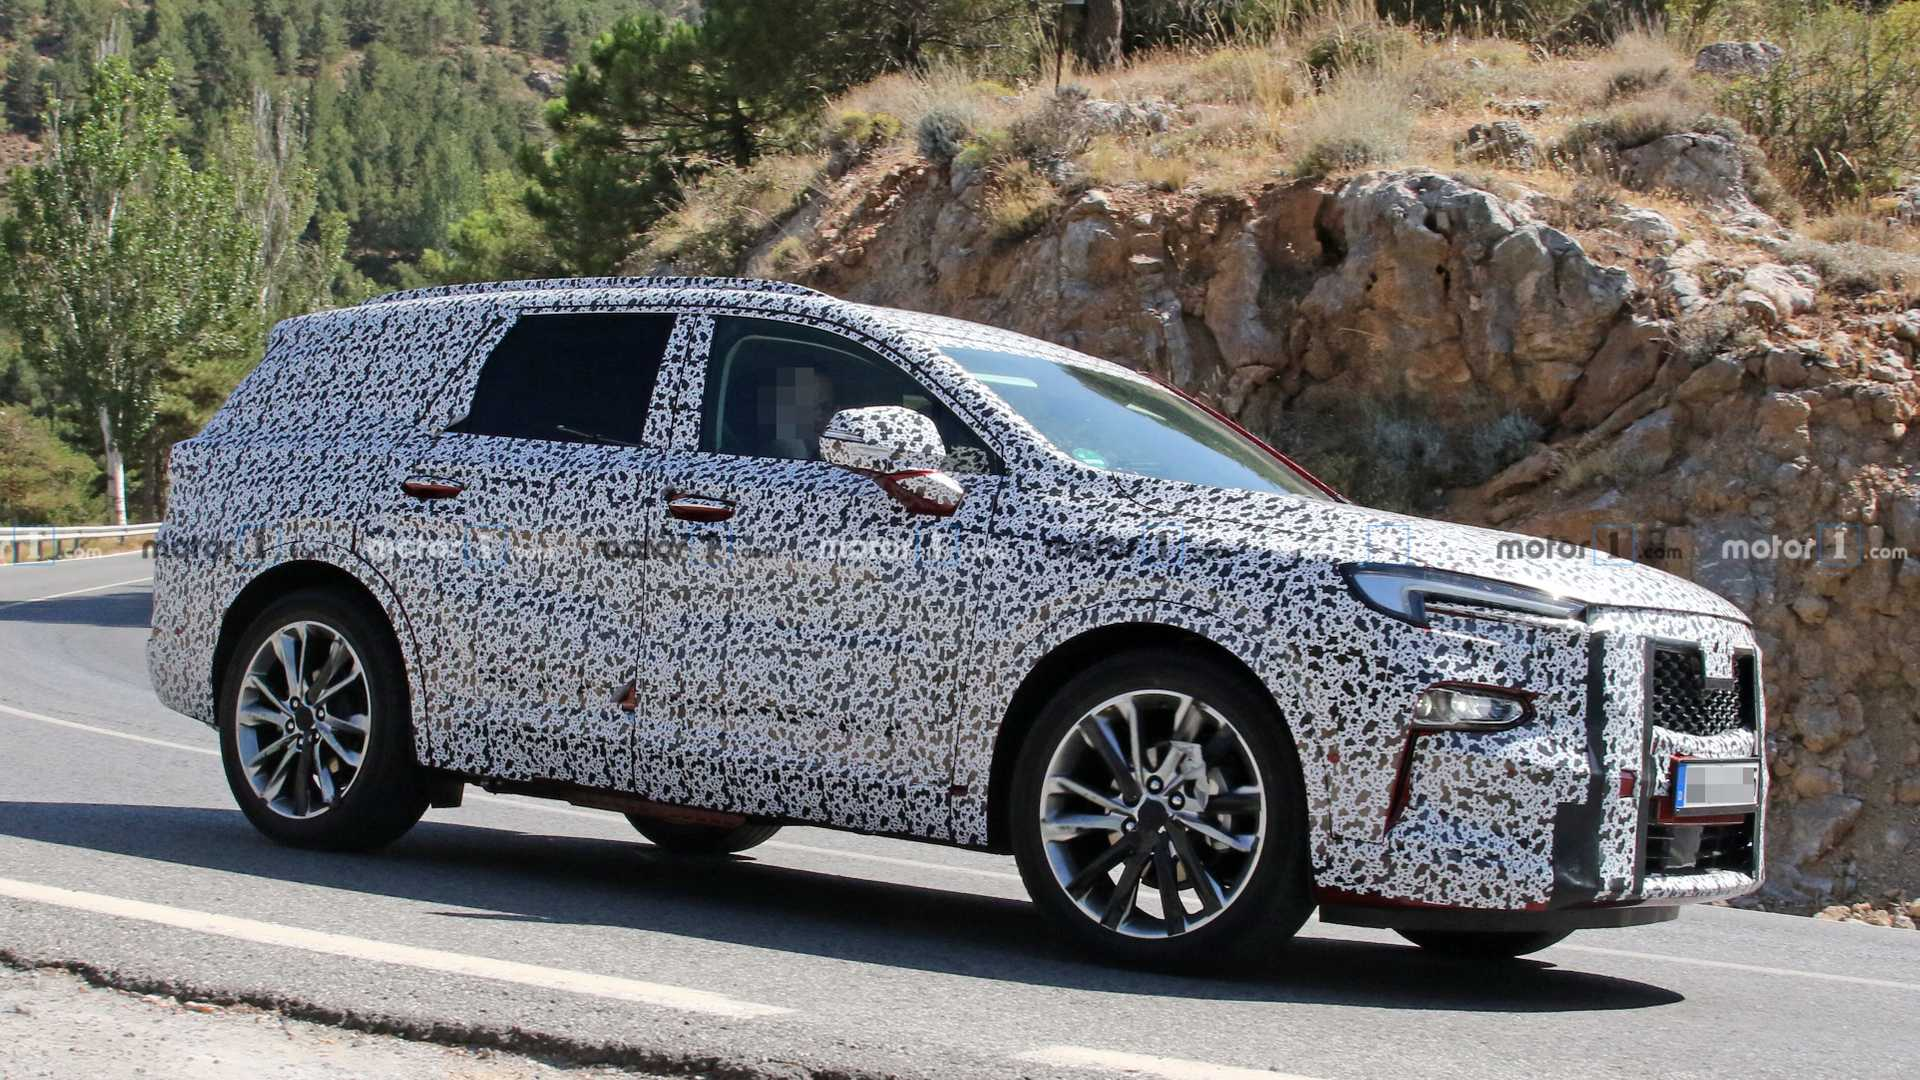 New Opel Three-Row Full-Size SUV Spied For The First Time [UPDATE]